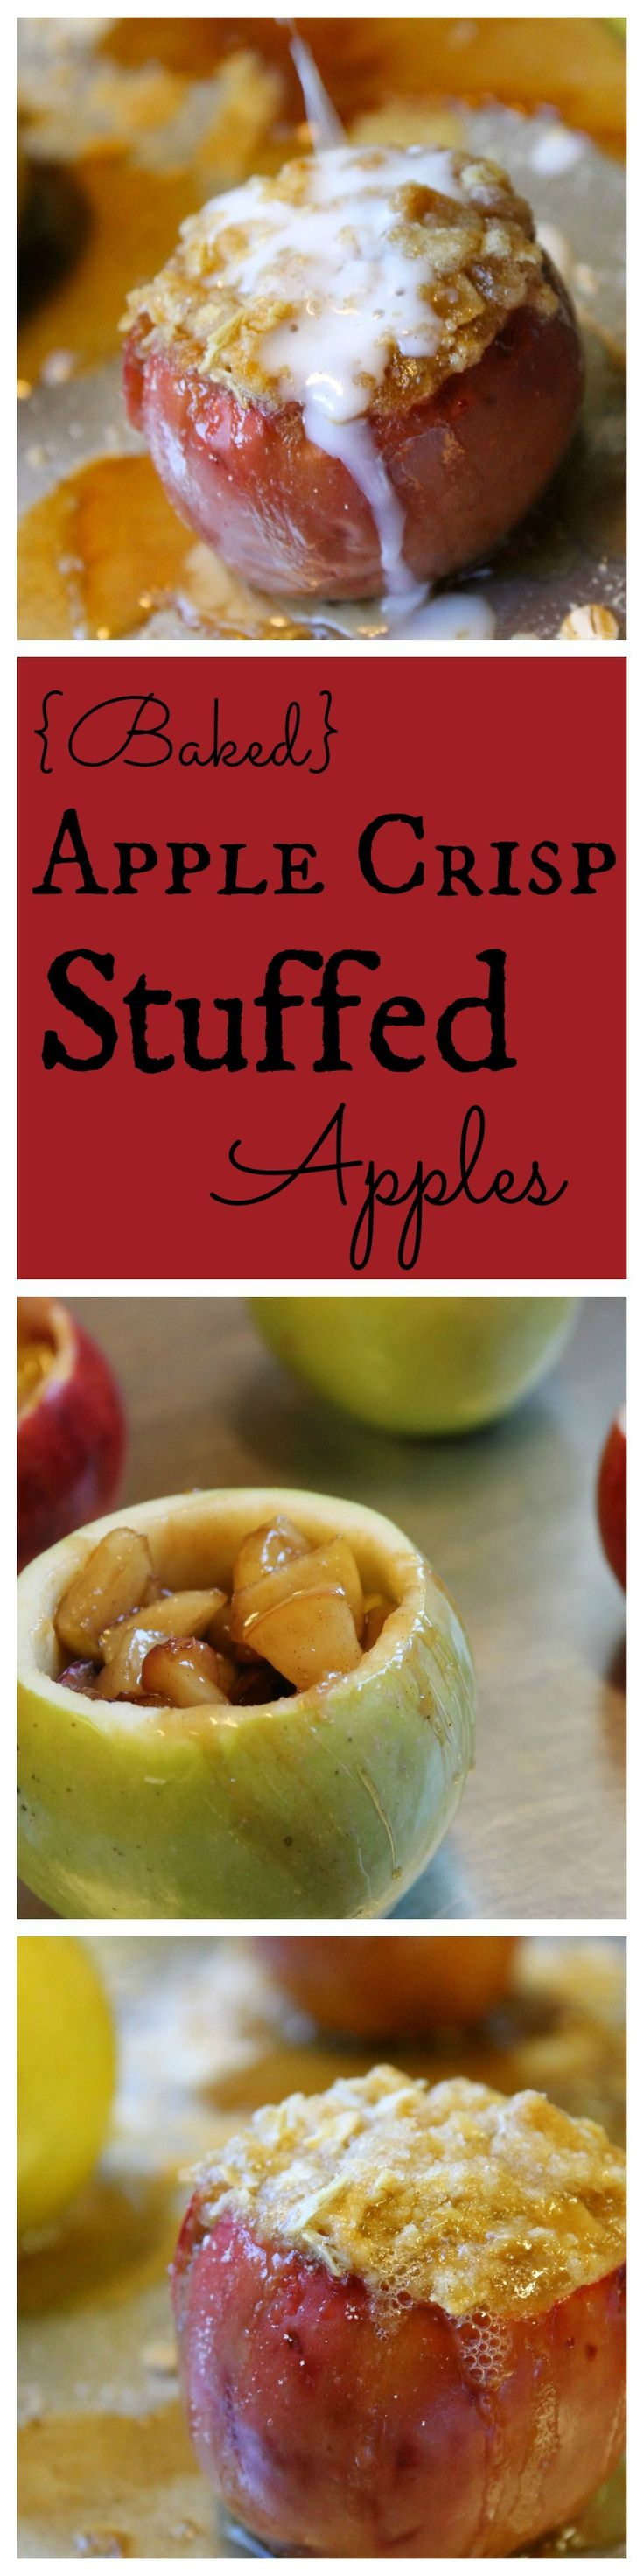 Baked apple crisps, Apple crisp and Baked apples on Pinterest